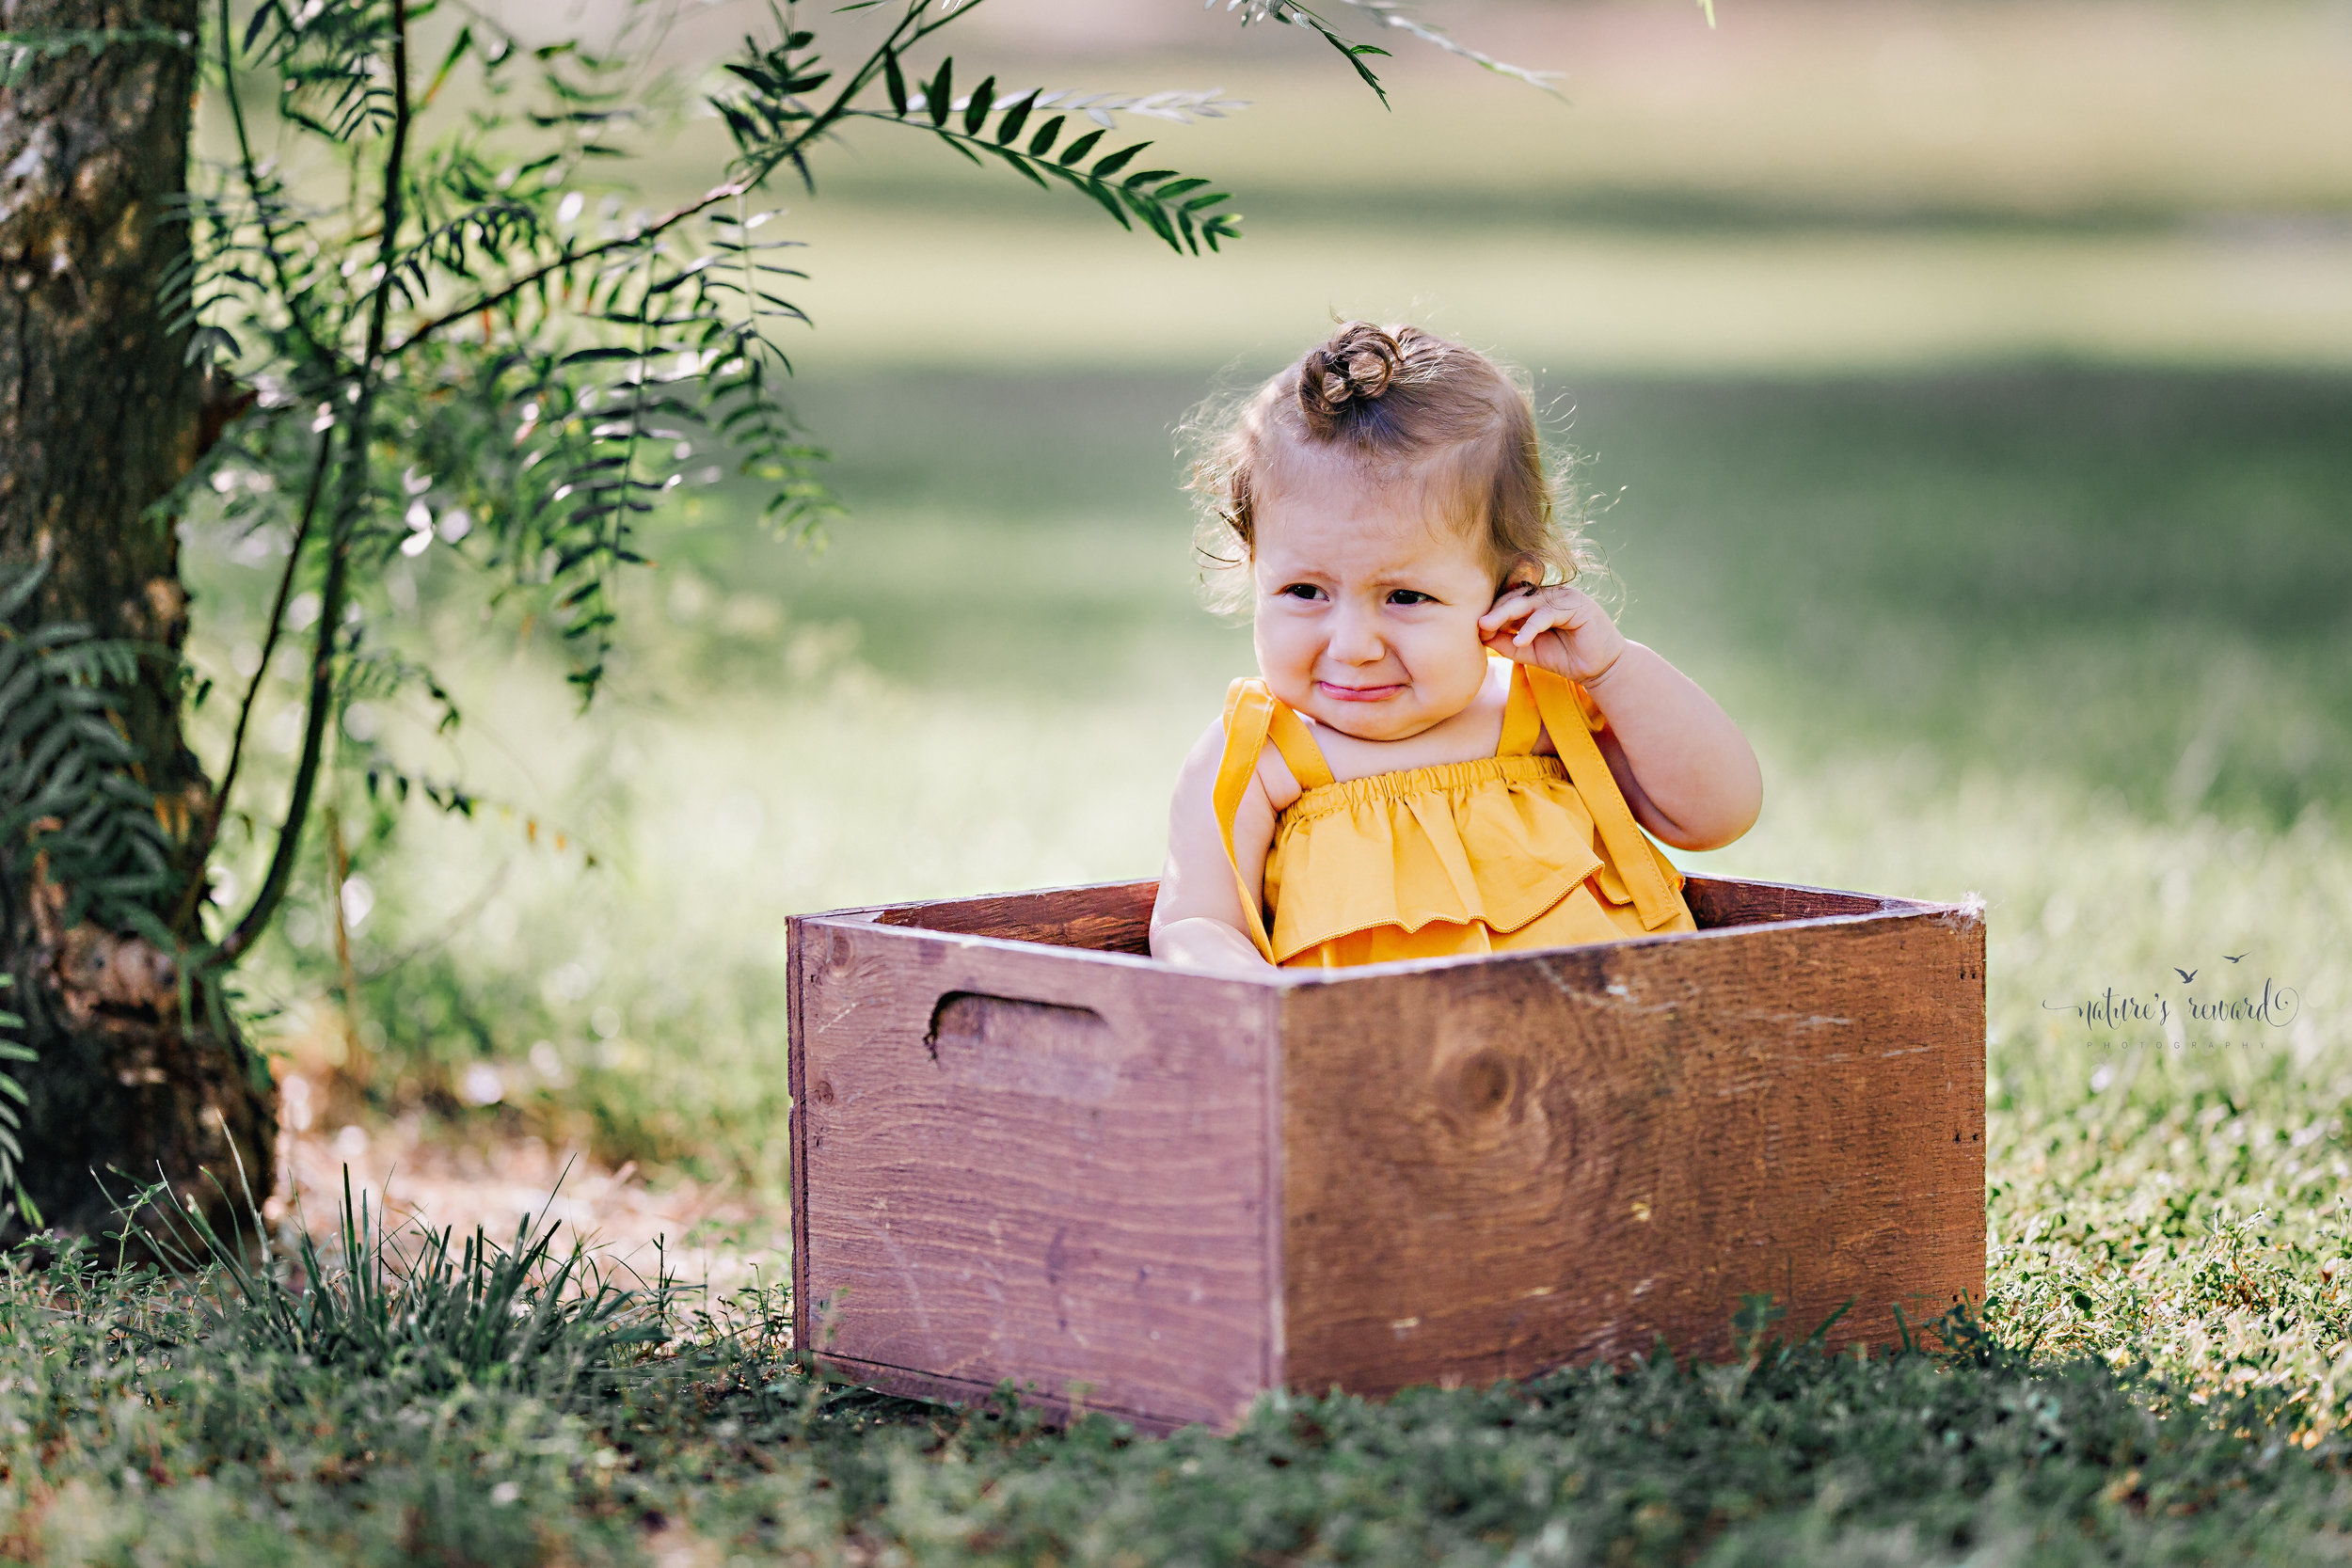 Lovely baby in yellow top in box during her sitter session portrait session by Nature's Reward Photography